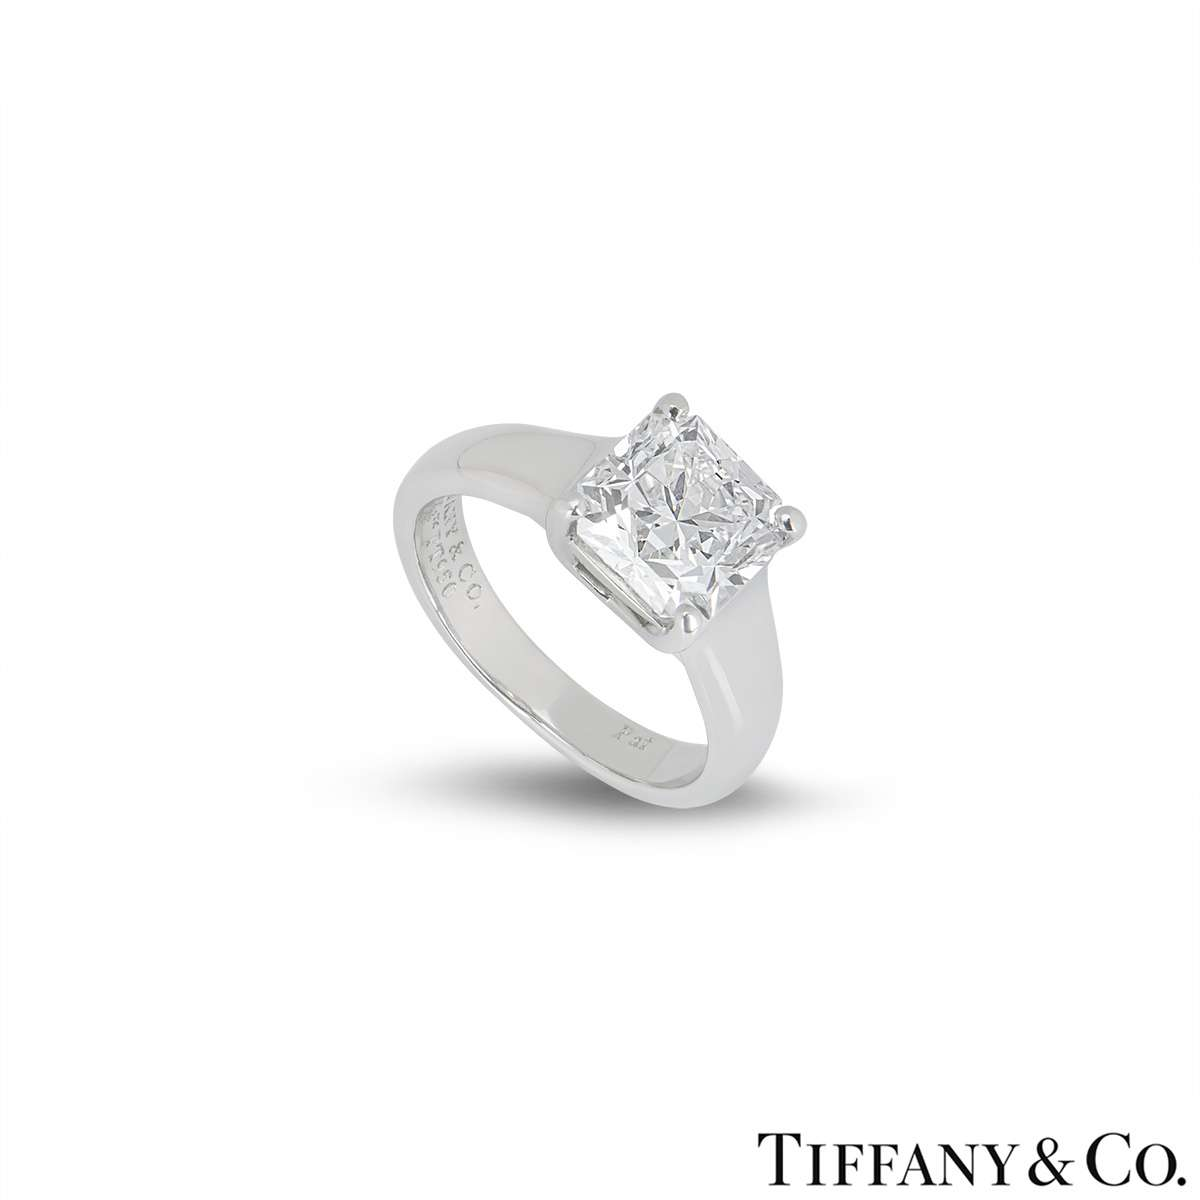 tiffany ring the crop subsampling square upscale scale product false engagement shop lucida co cut diamond